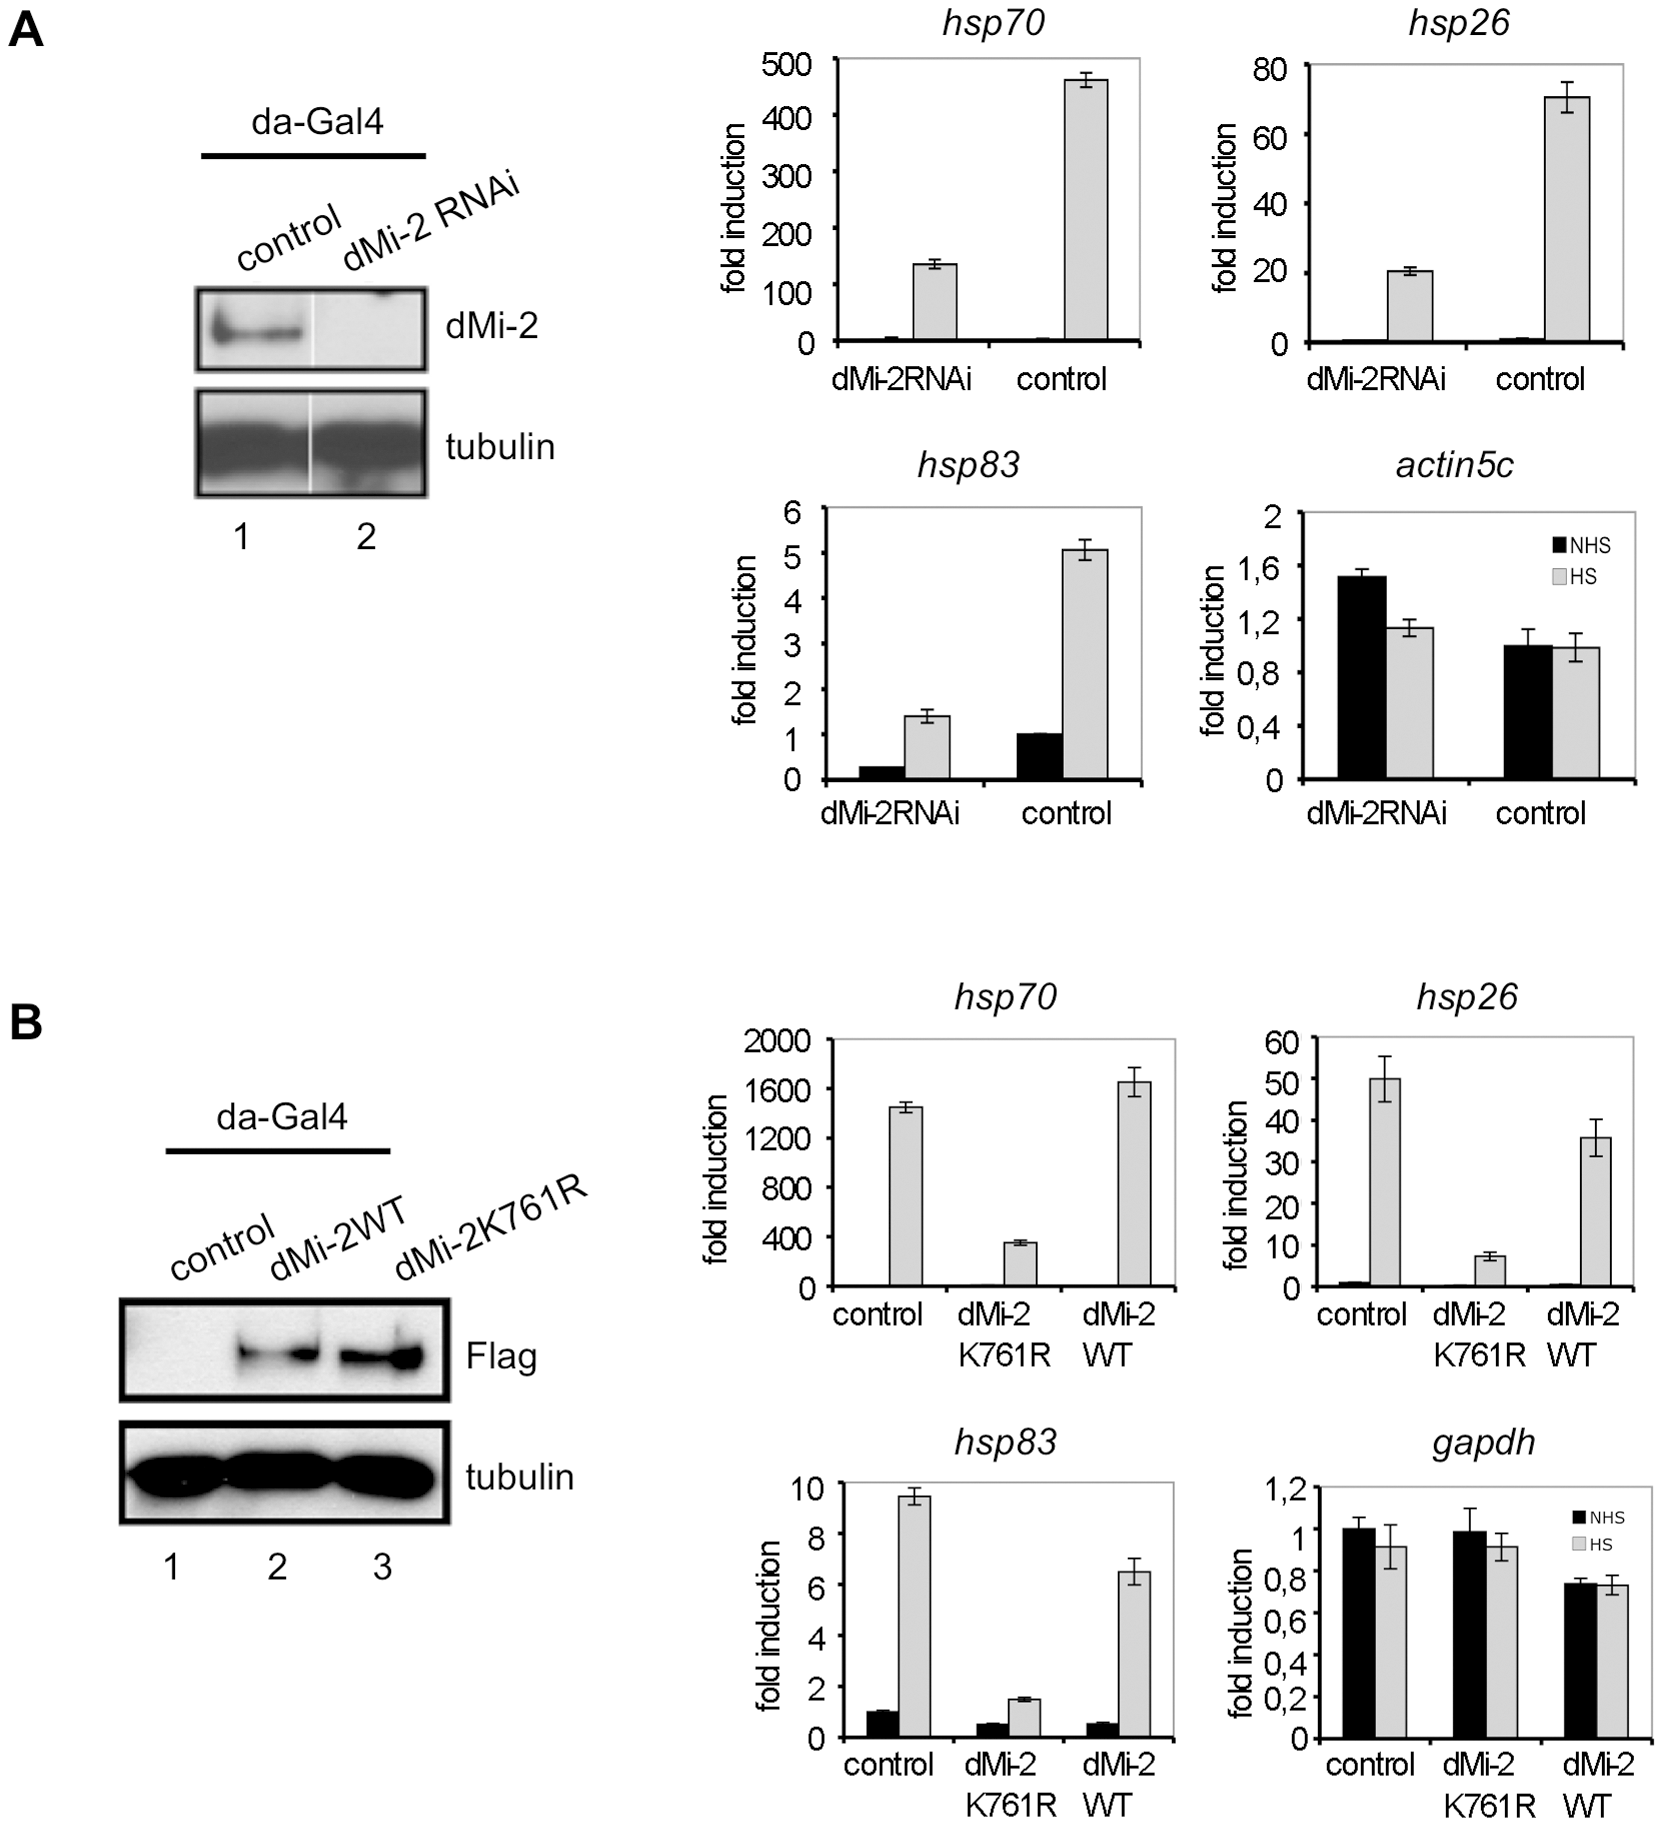 dMi-2 is required for efficient HS gene transcription.